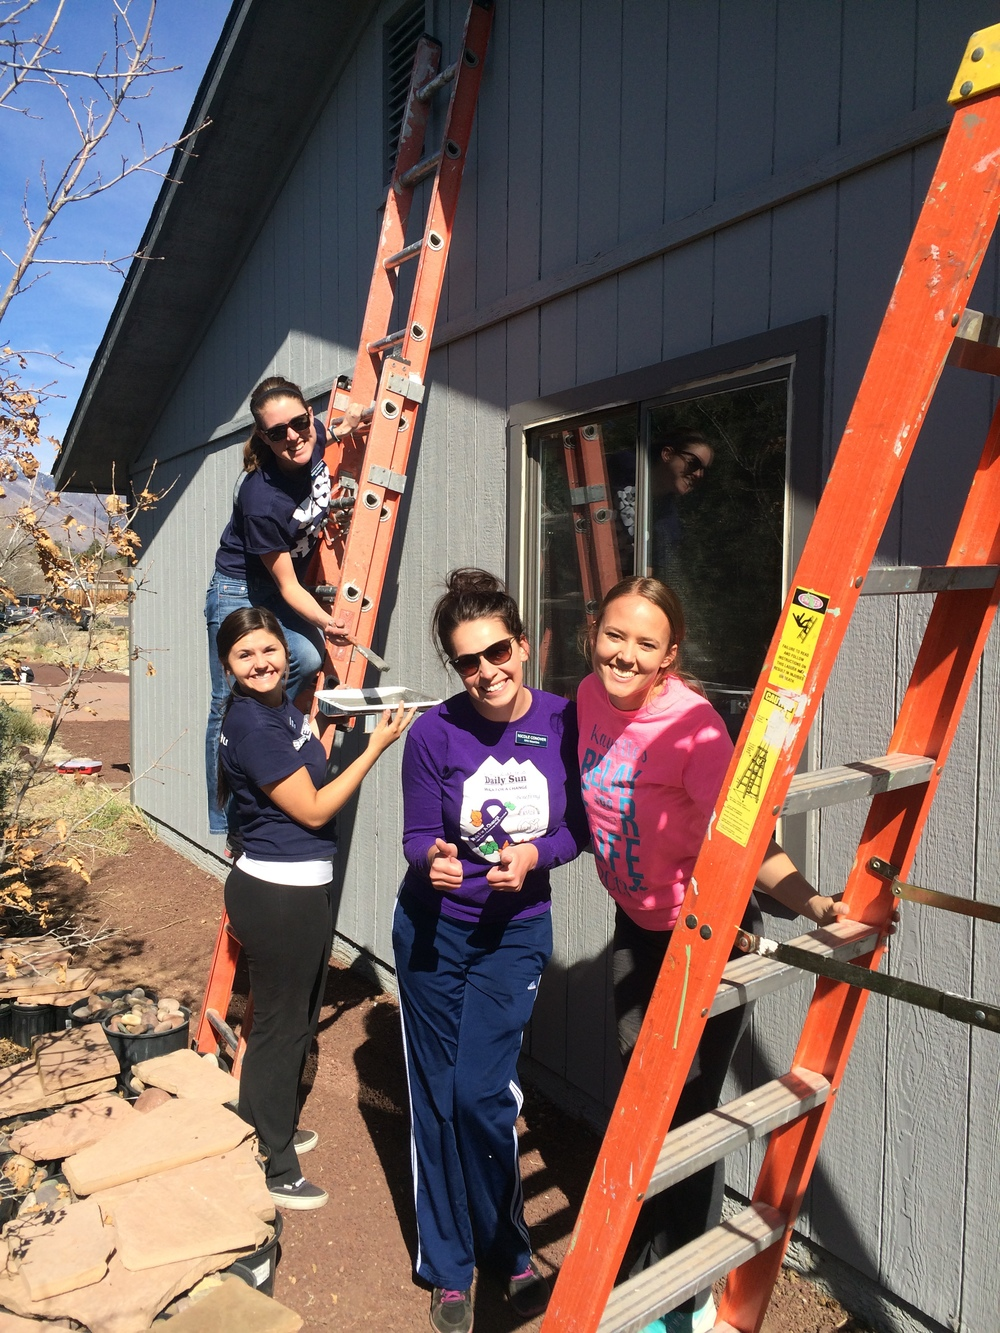 It was great to work with WL Gore, Flagstaff Leadership Program, the Blue Key Honor Society, and these NAU Kayettes at our last painting site!